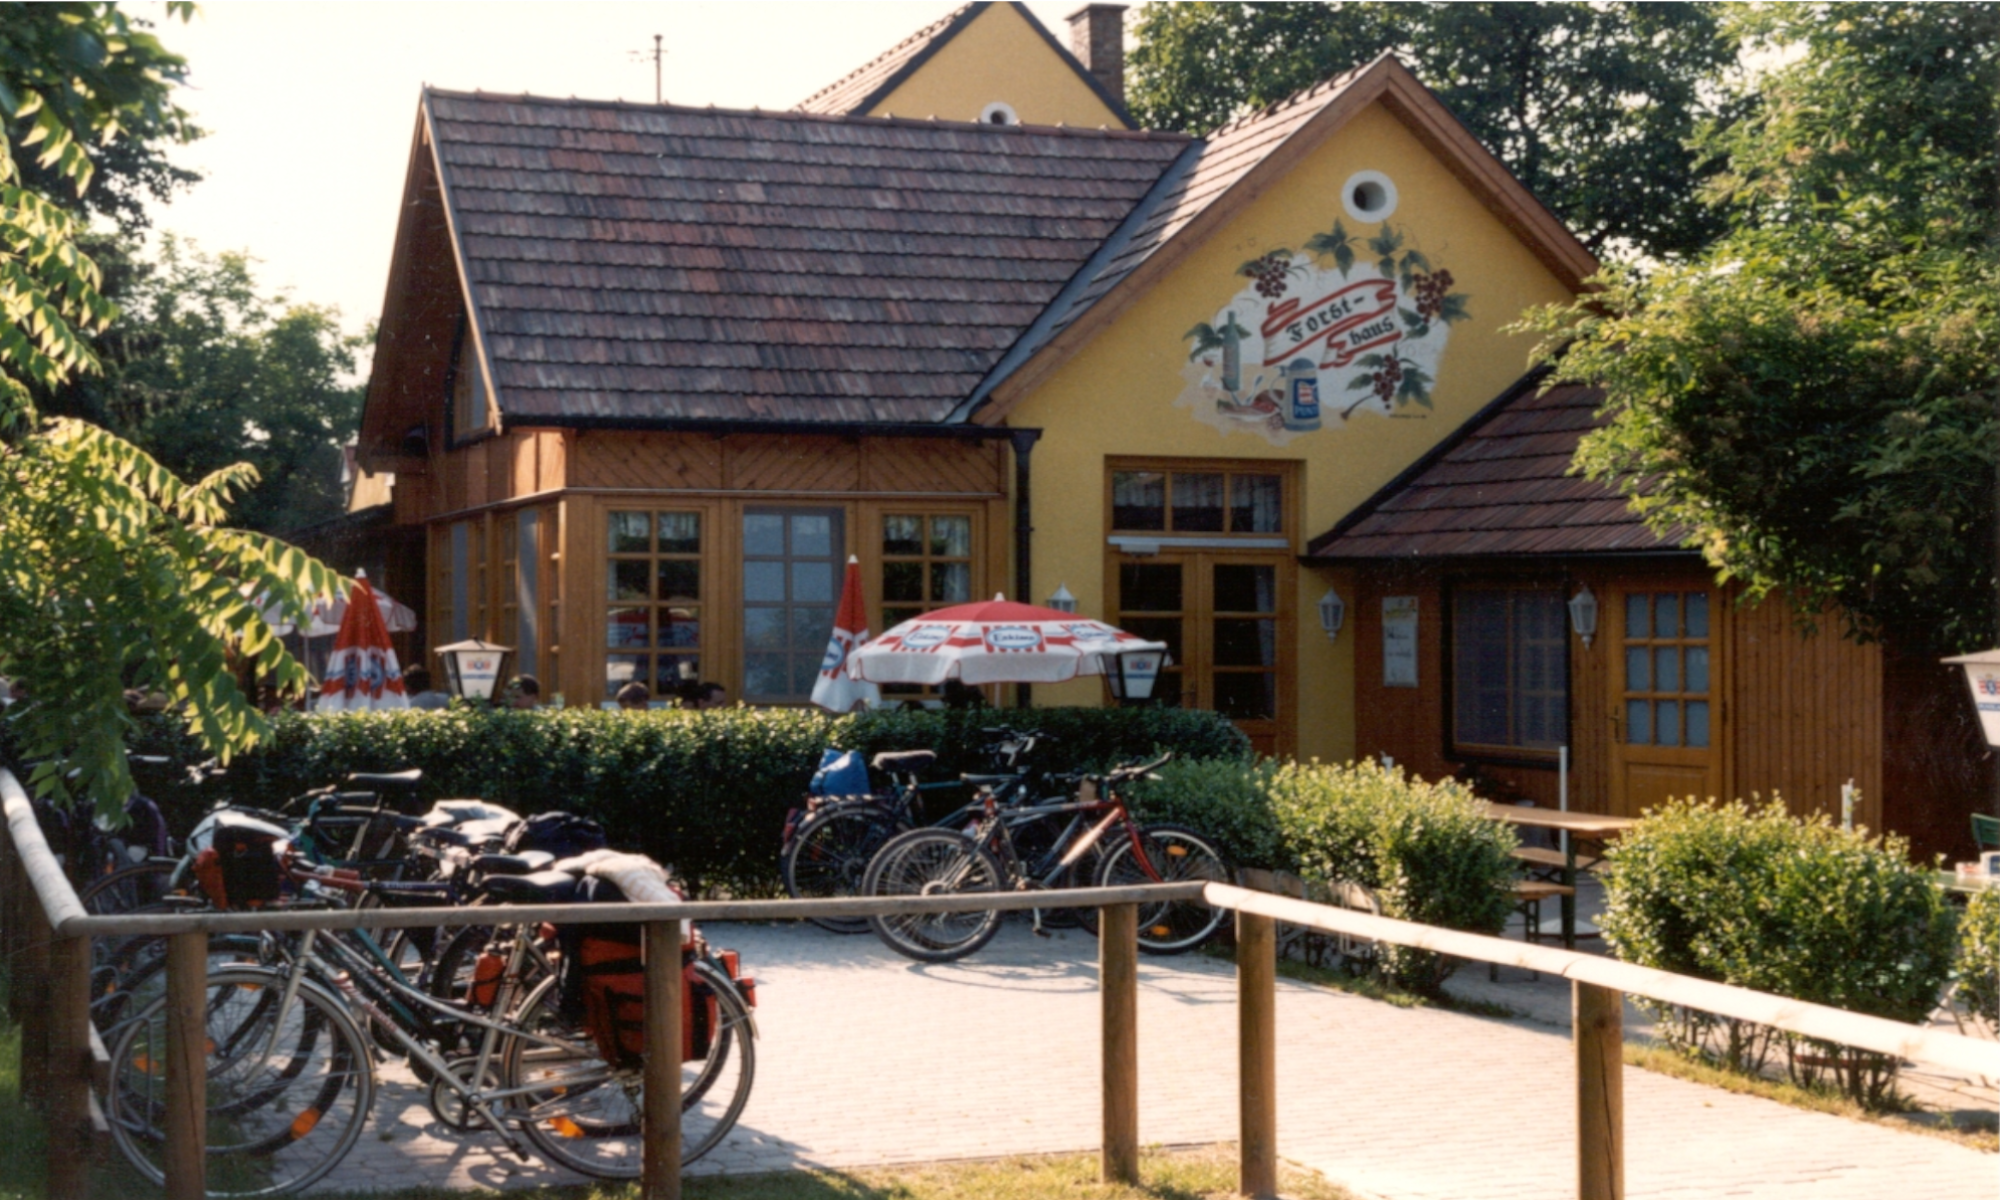 Forsthaus STOPFENREUTH